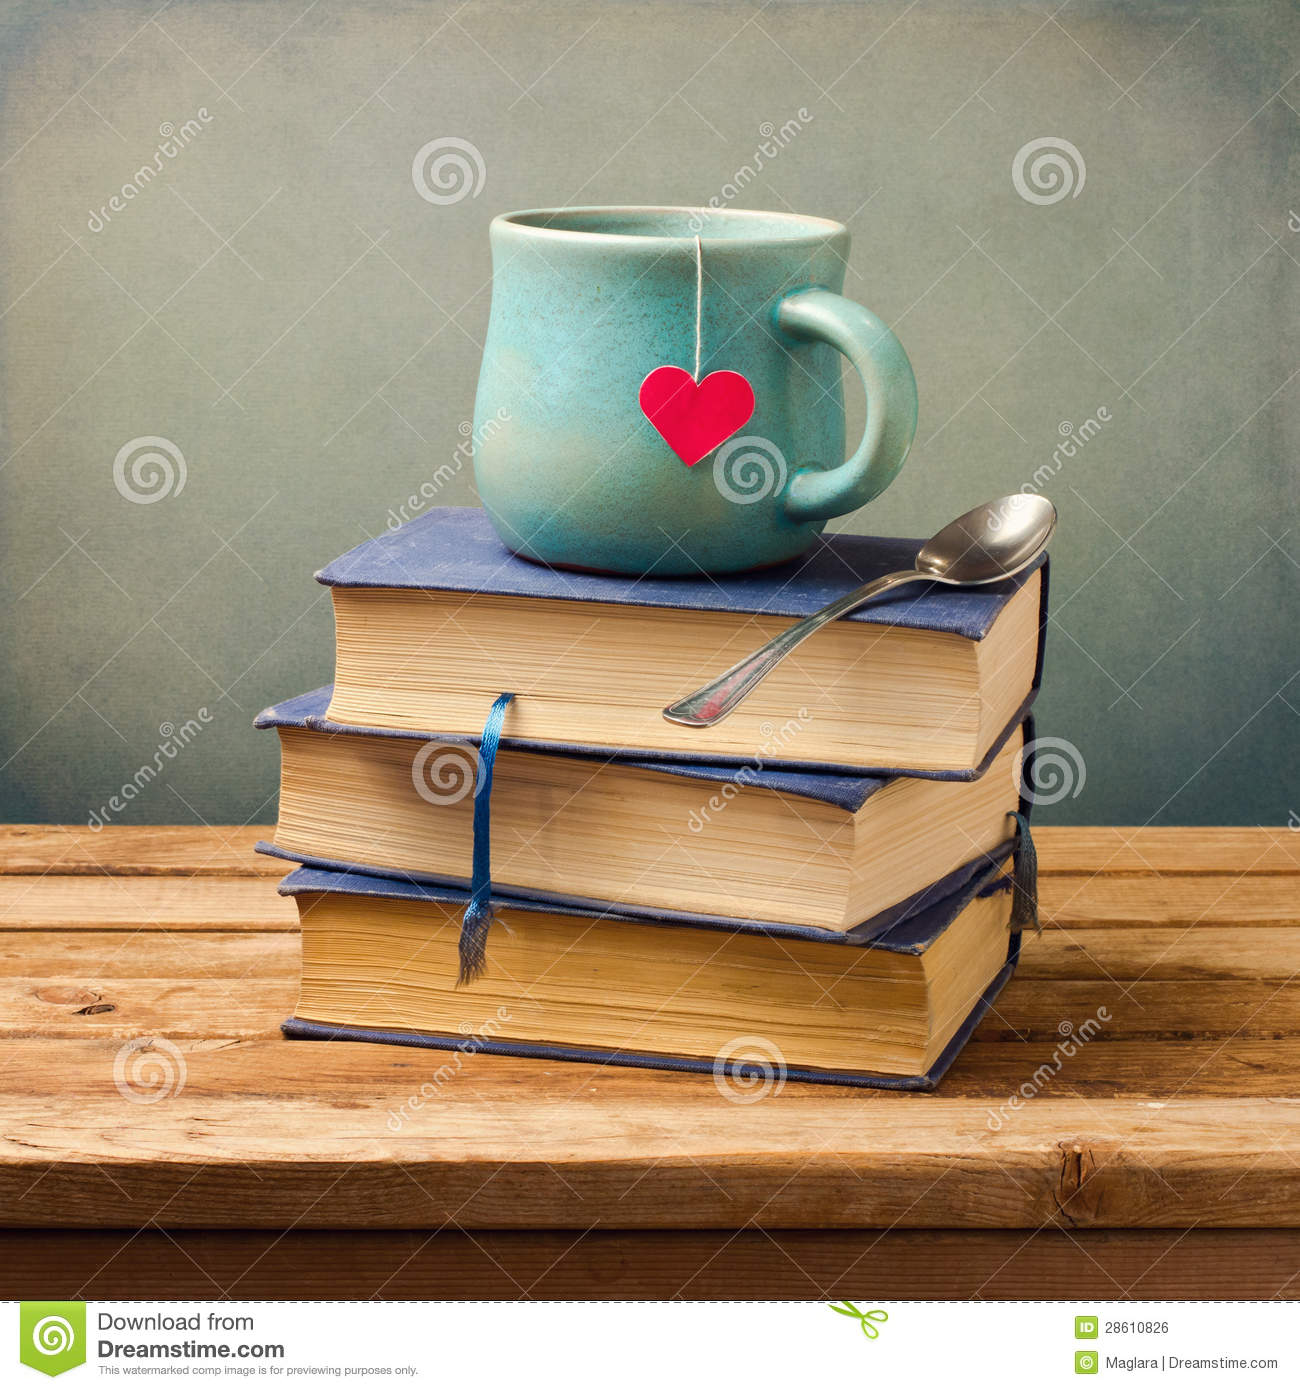 Old vintage books and cup with heart shape